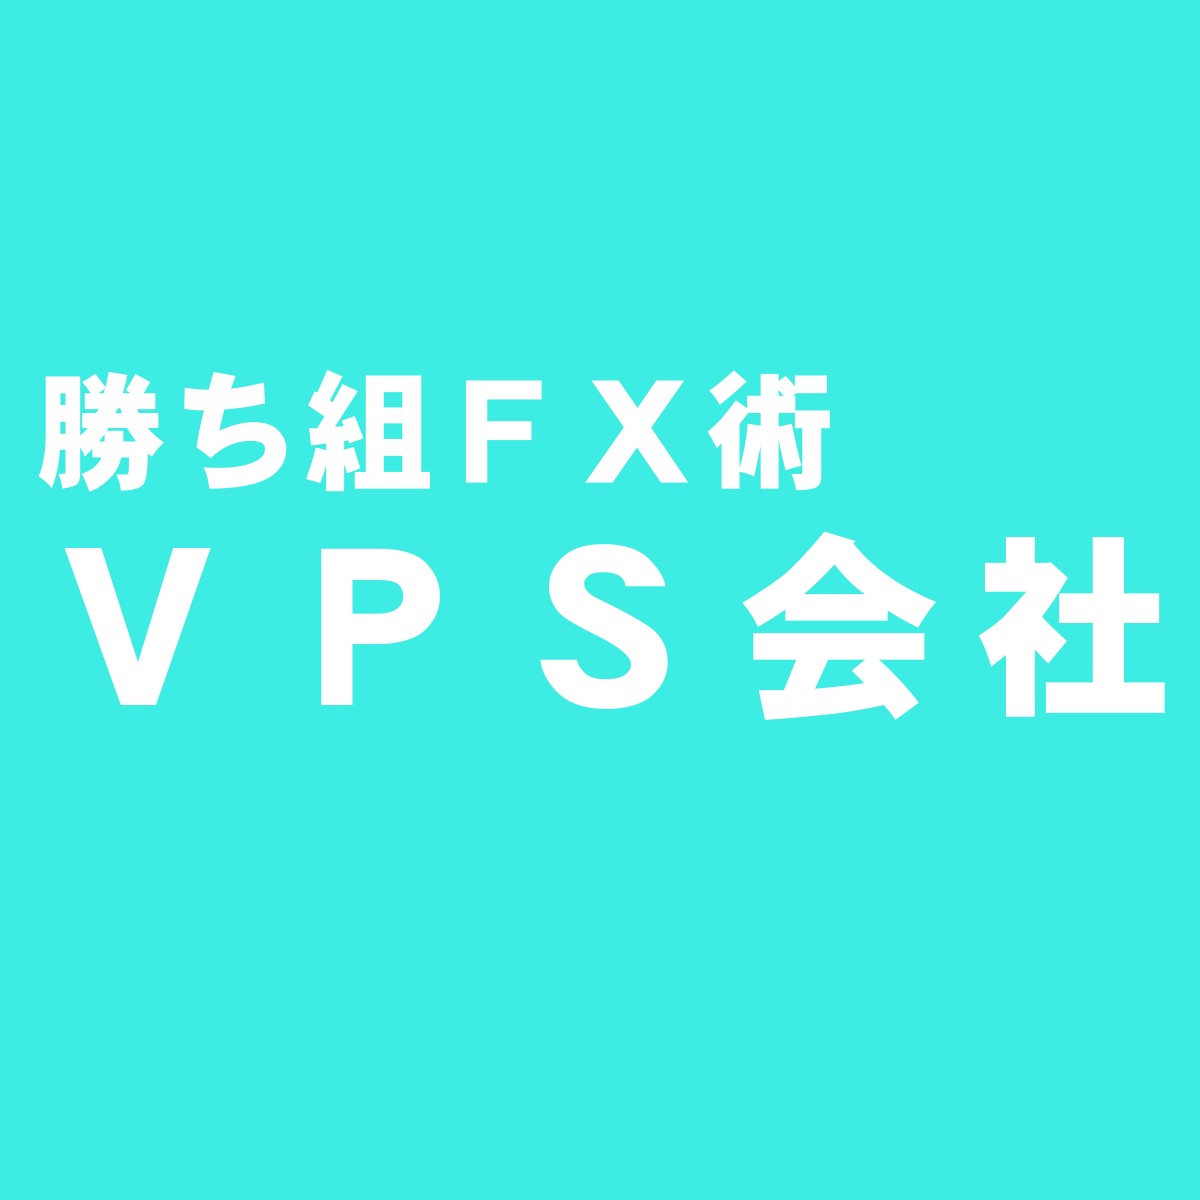 VPS会社